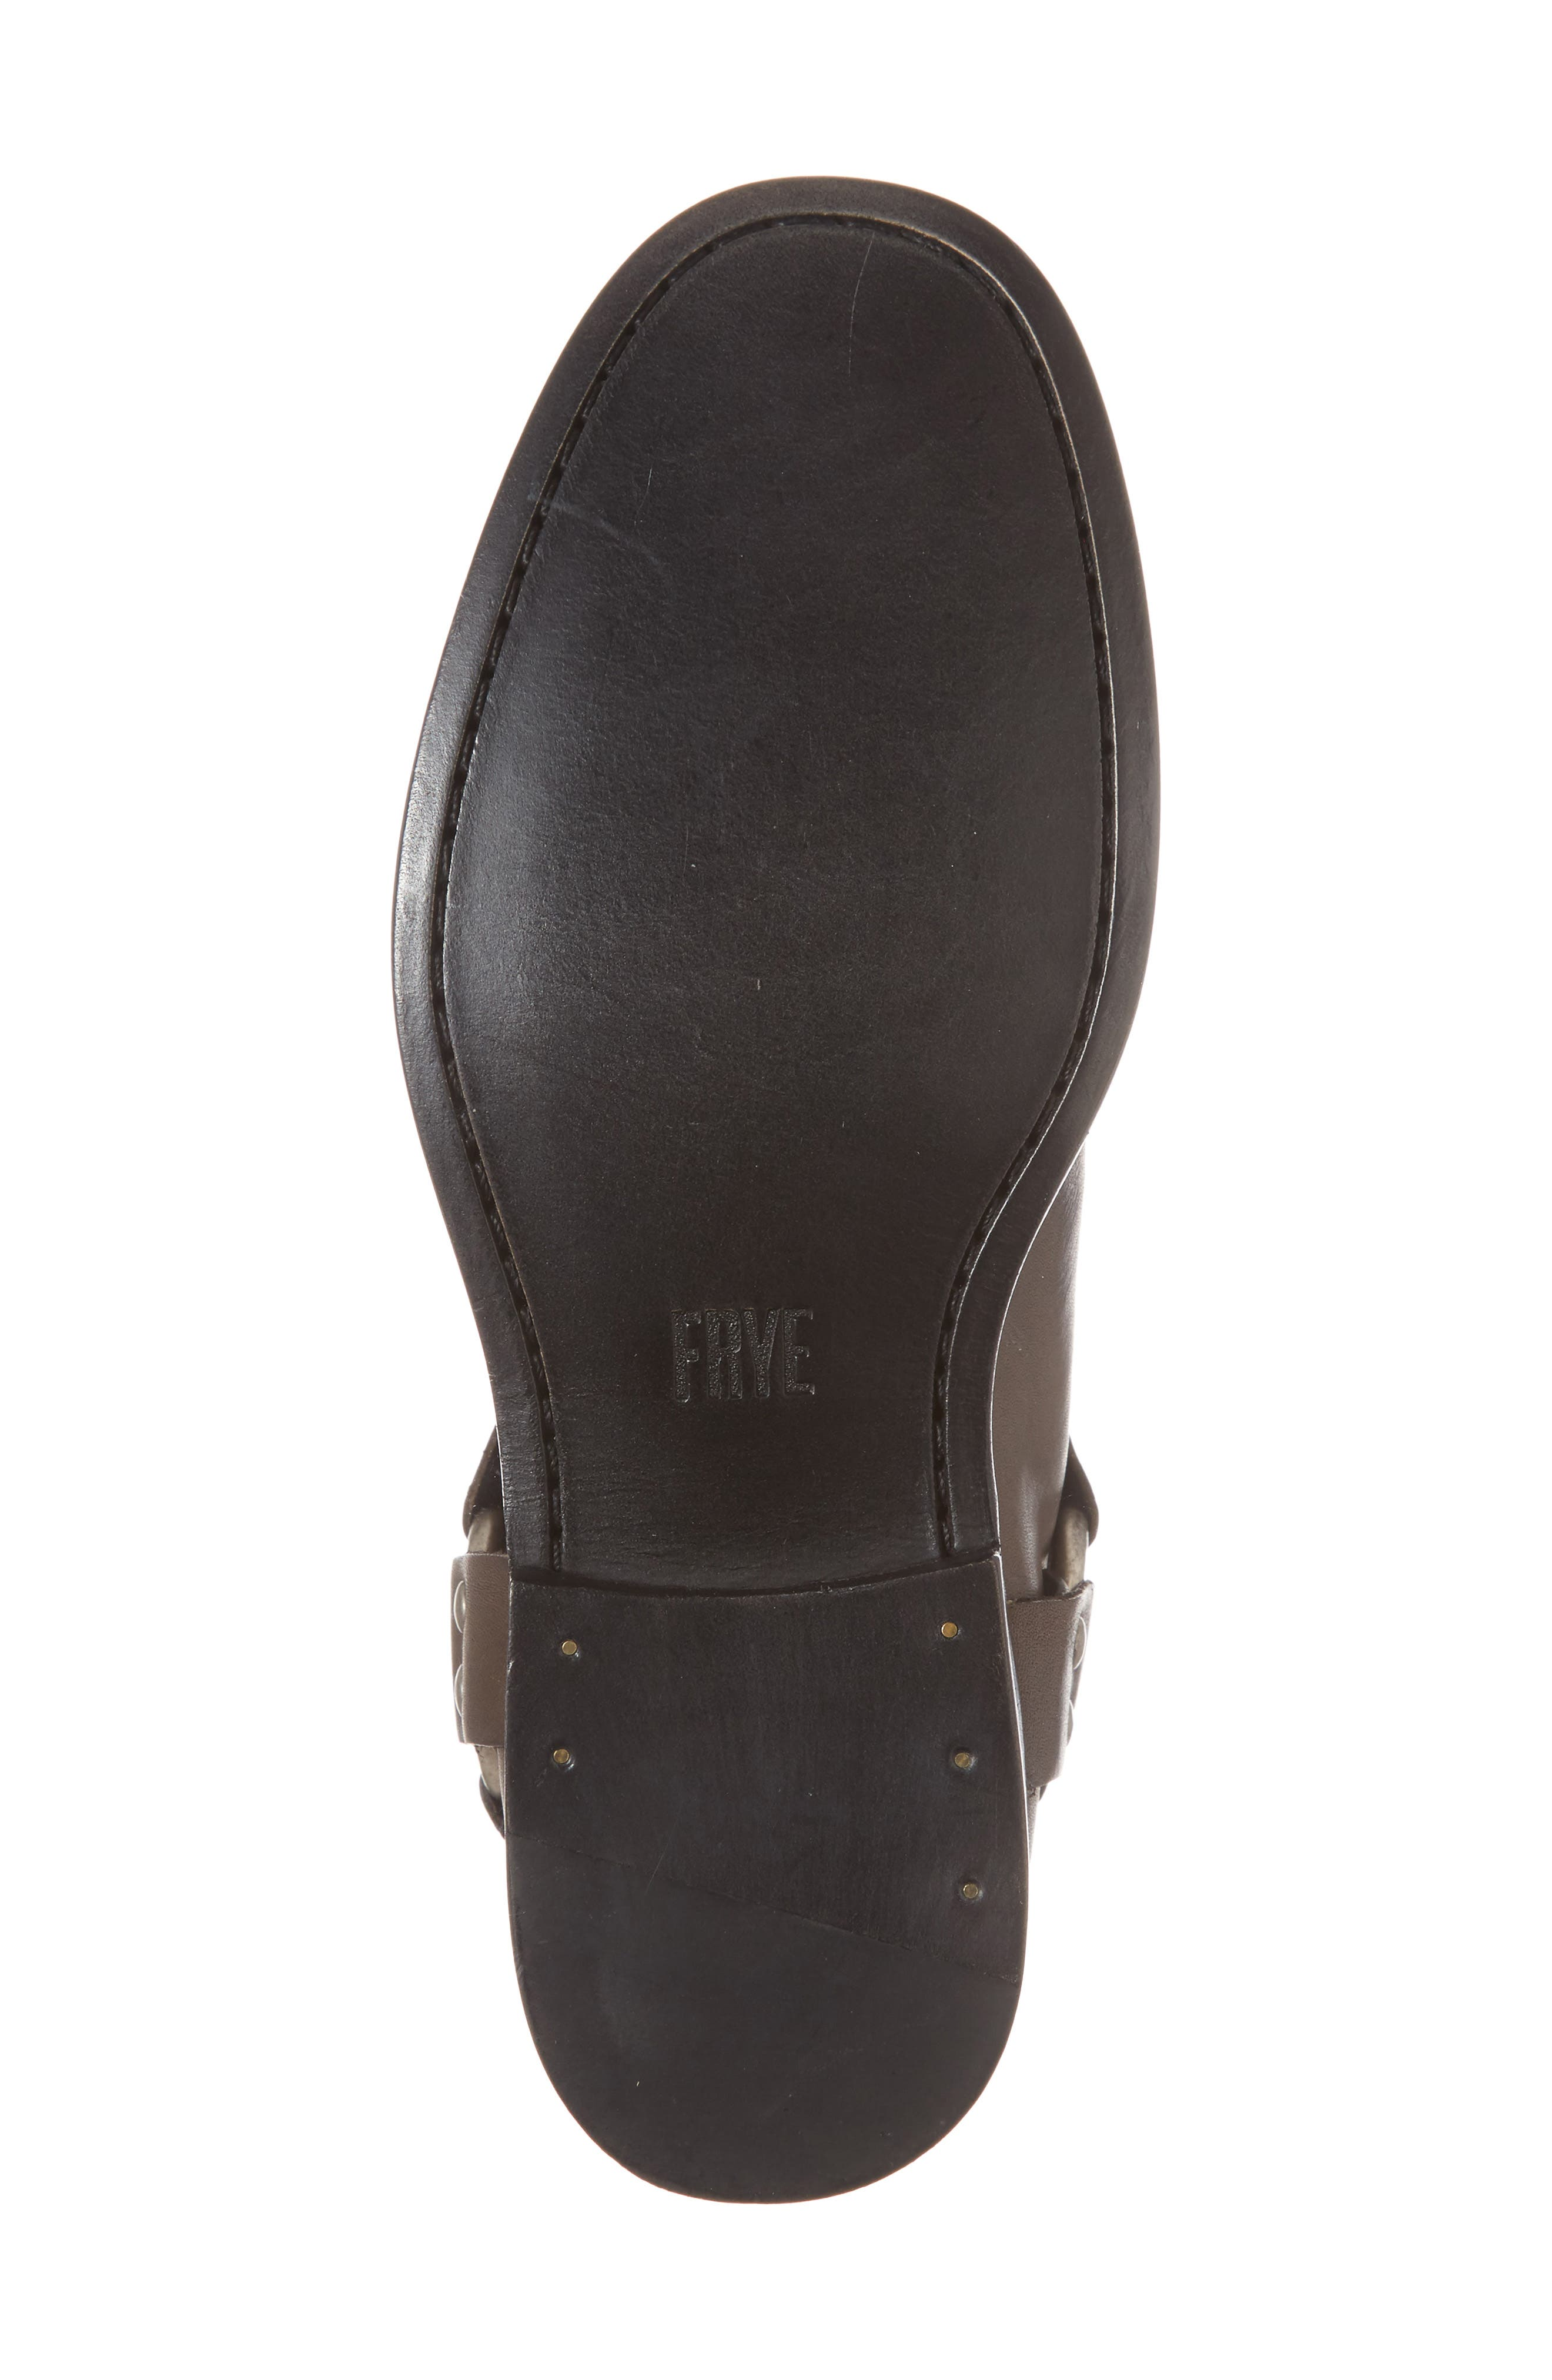 Phillip Harness Boot,                             Alternate thumbnail 6, color,                             Smoke Leather